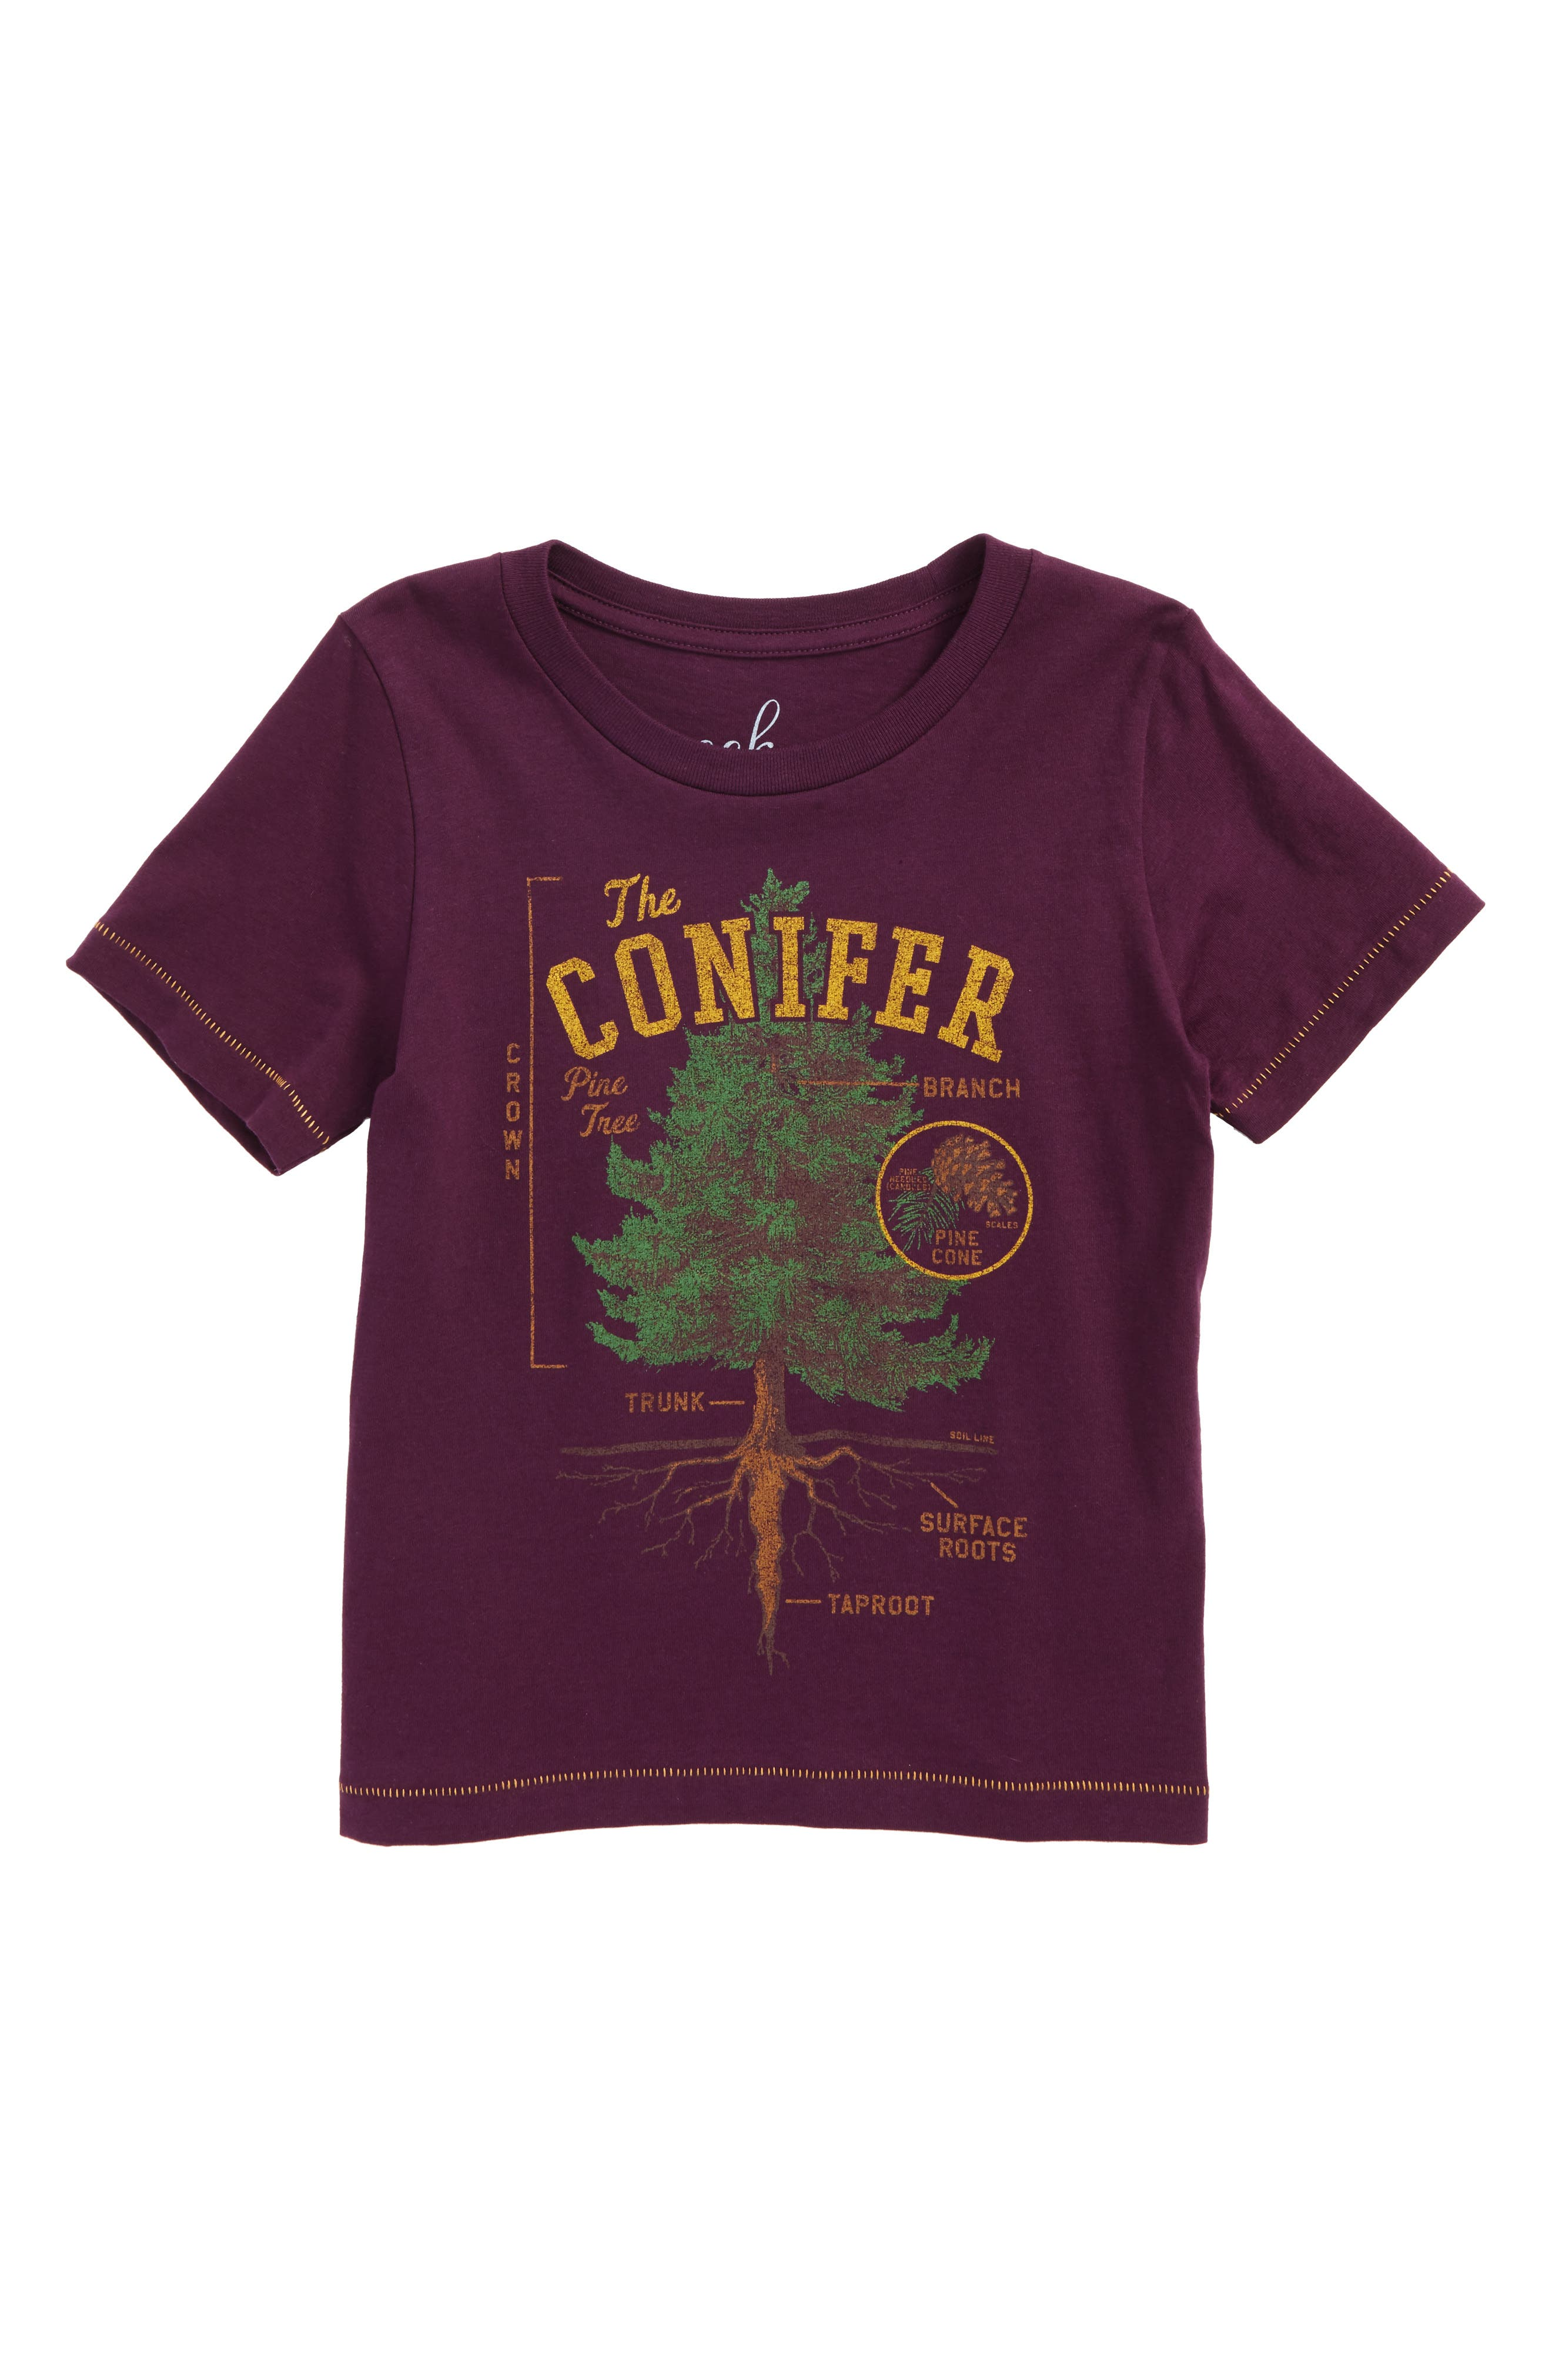 Main Image - Peek The Conifer Graphic T-Shirt (Toddler Boys, Little Boys & Big Boys)